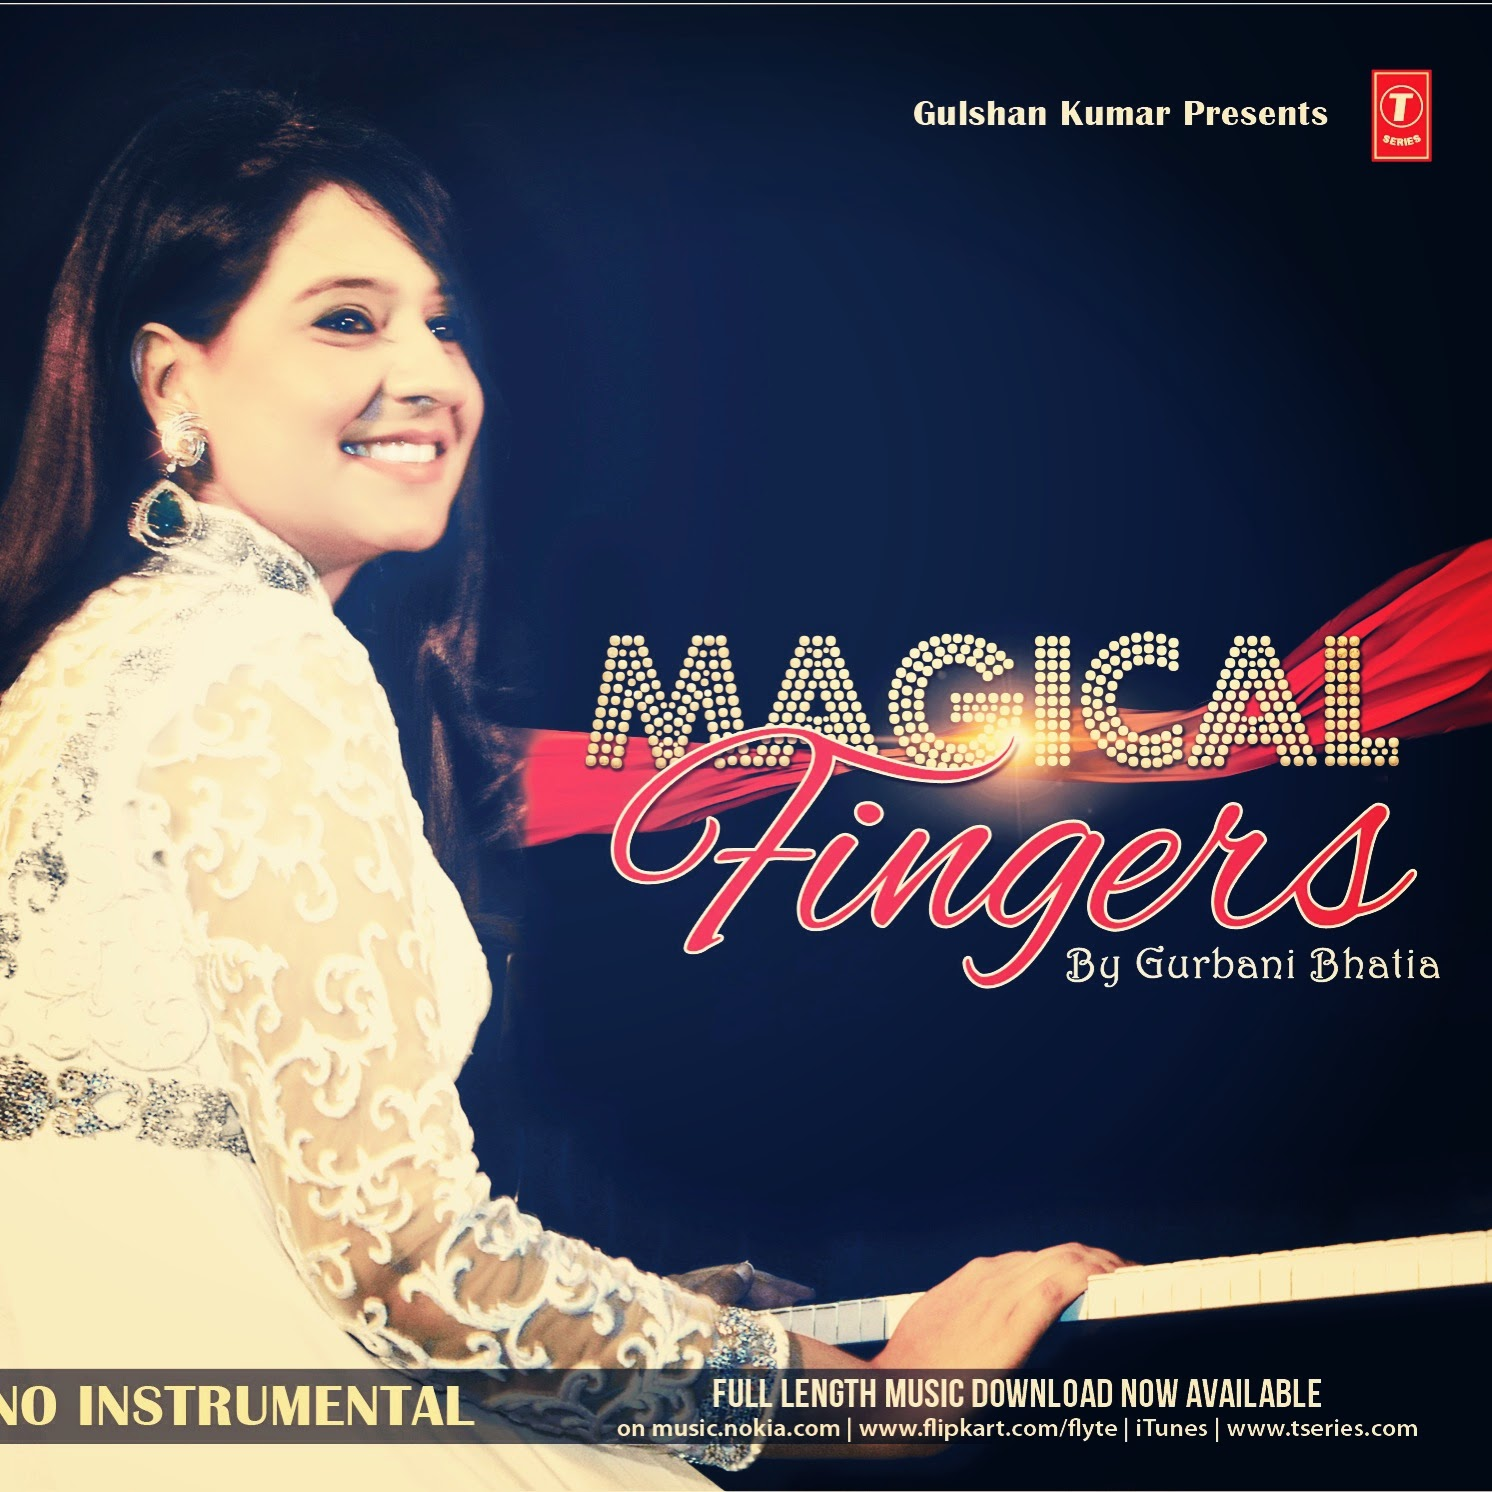 Album released in 2013 : magical fingers